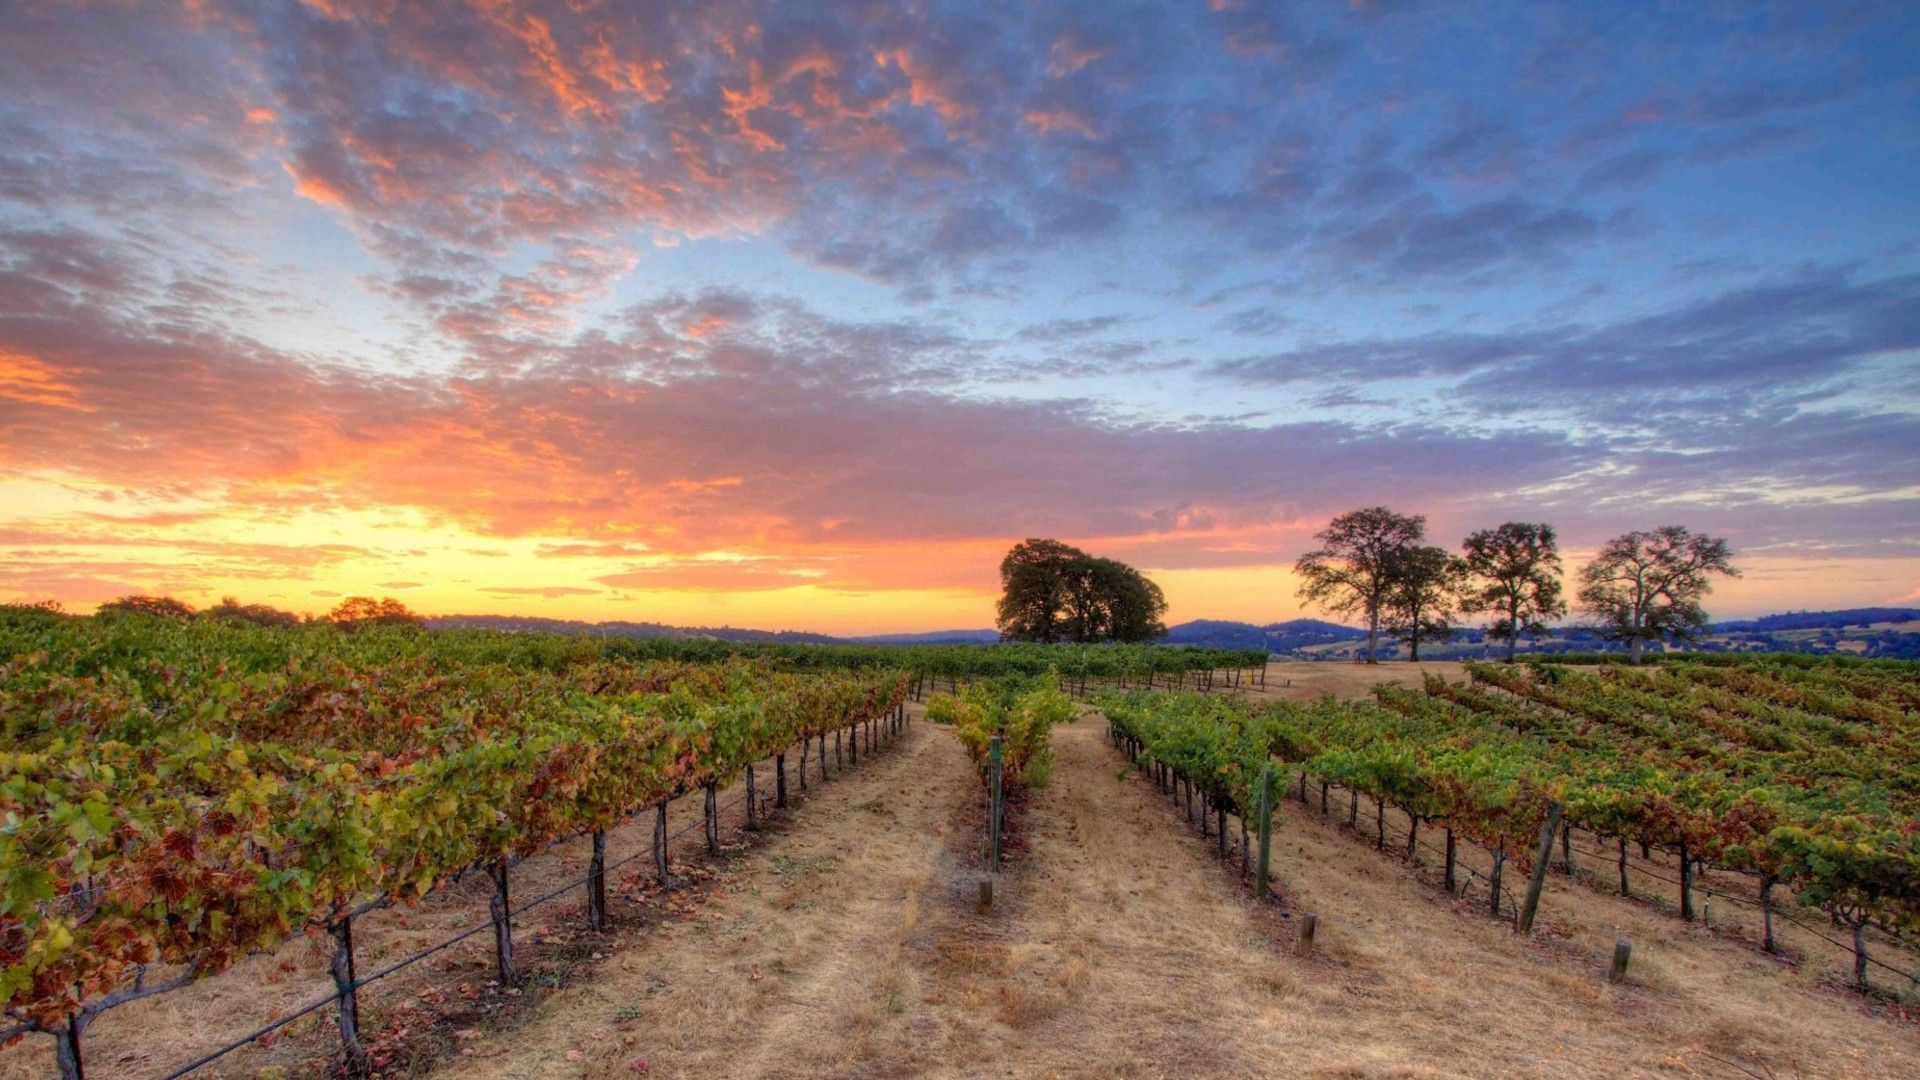 The Best Vineyards To Visit In Santa Barbara According To Master Somm Dustin Wilson